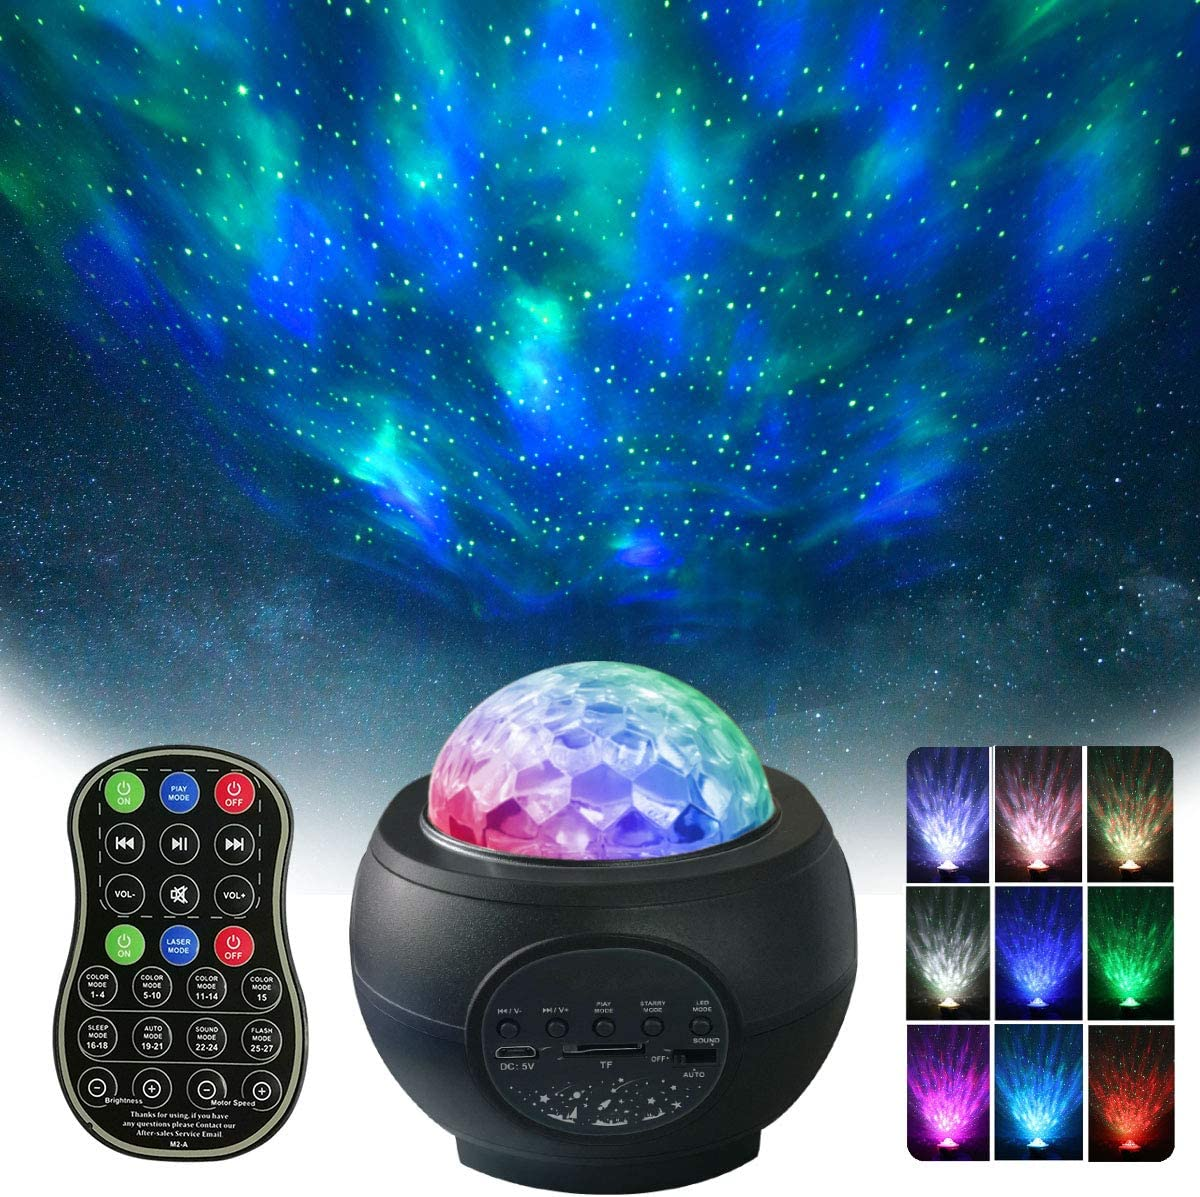 Black Galaxy Projector BSYUN 2nd Version 3 in 1 Sound Activated Night Lights Projector with Remote Control for Bedroom Room Ceiling D/écor Gift for Kids Adults